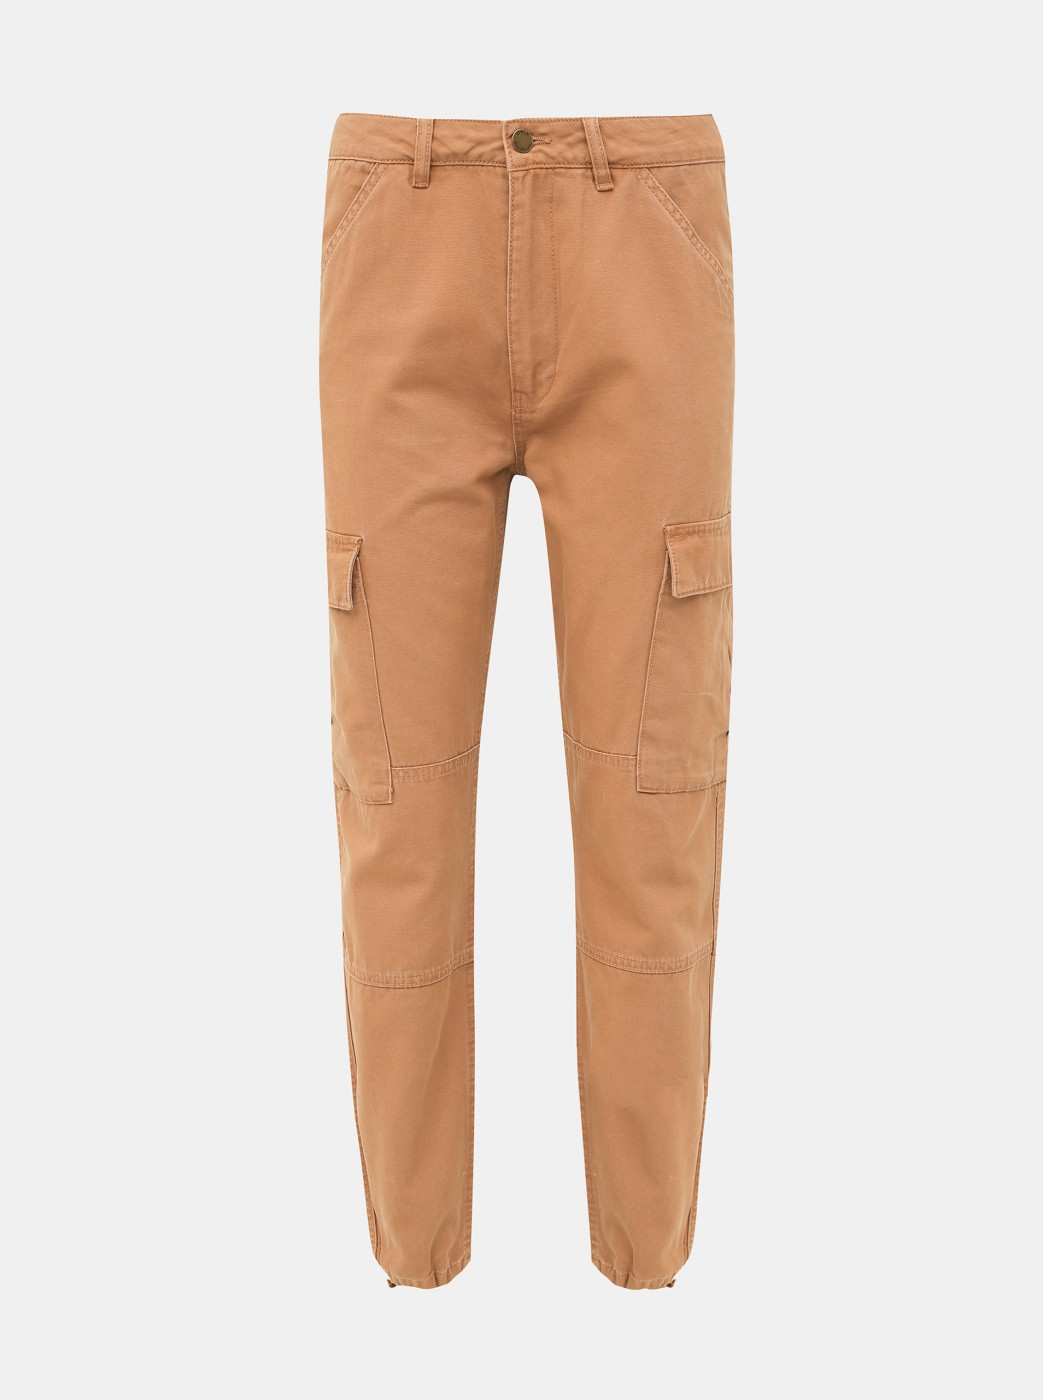 Light brown pants with only kombat pockets